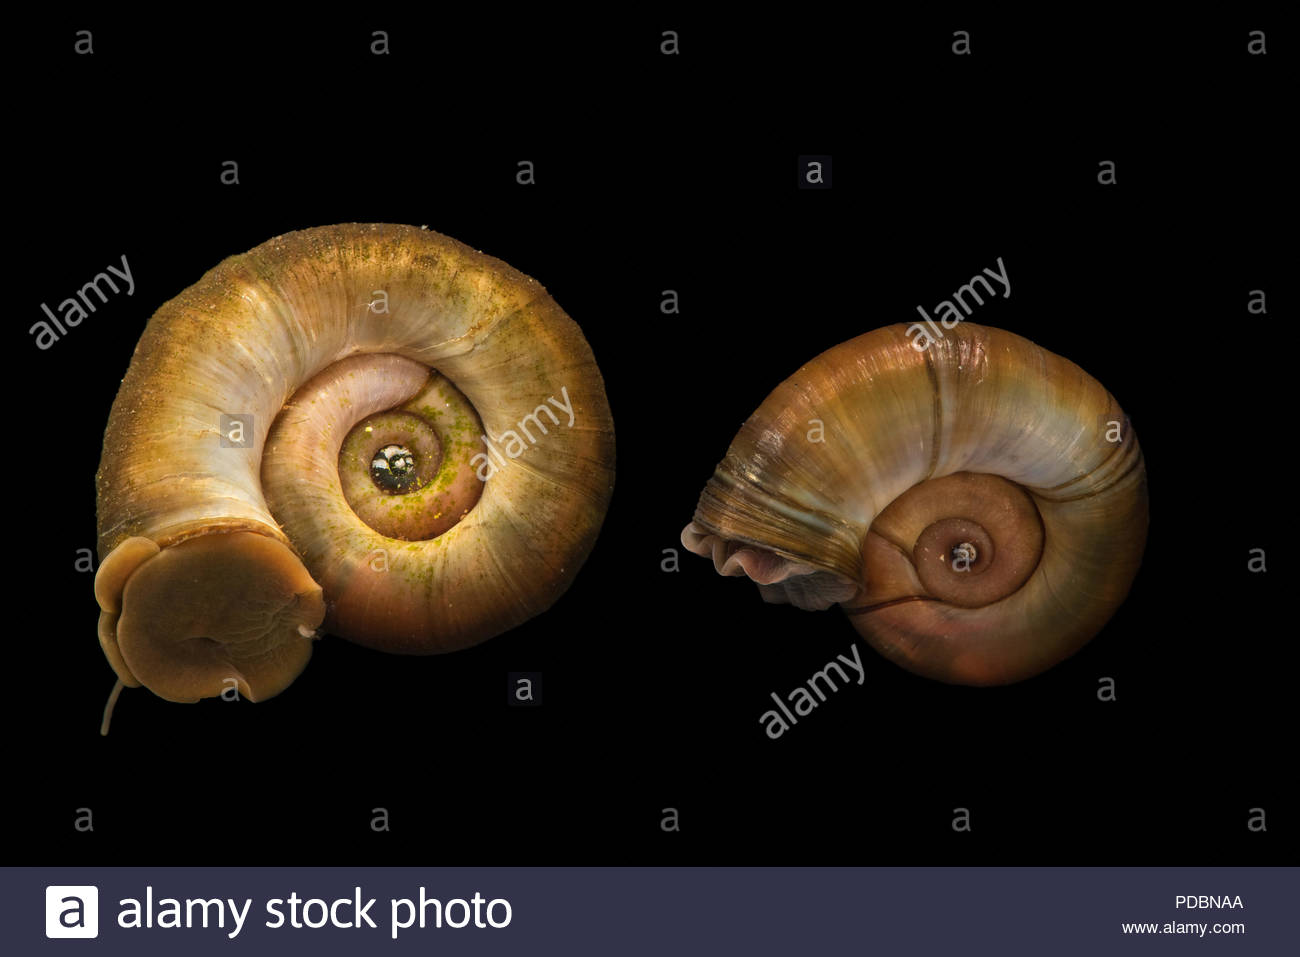 Great ramshorn snails, Planorbarius corneus, at Alpenzoo in Innsbruck, Austria. Stock Photo